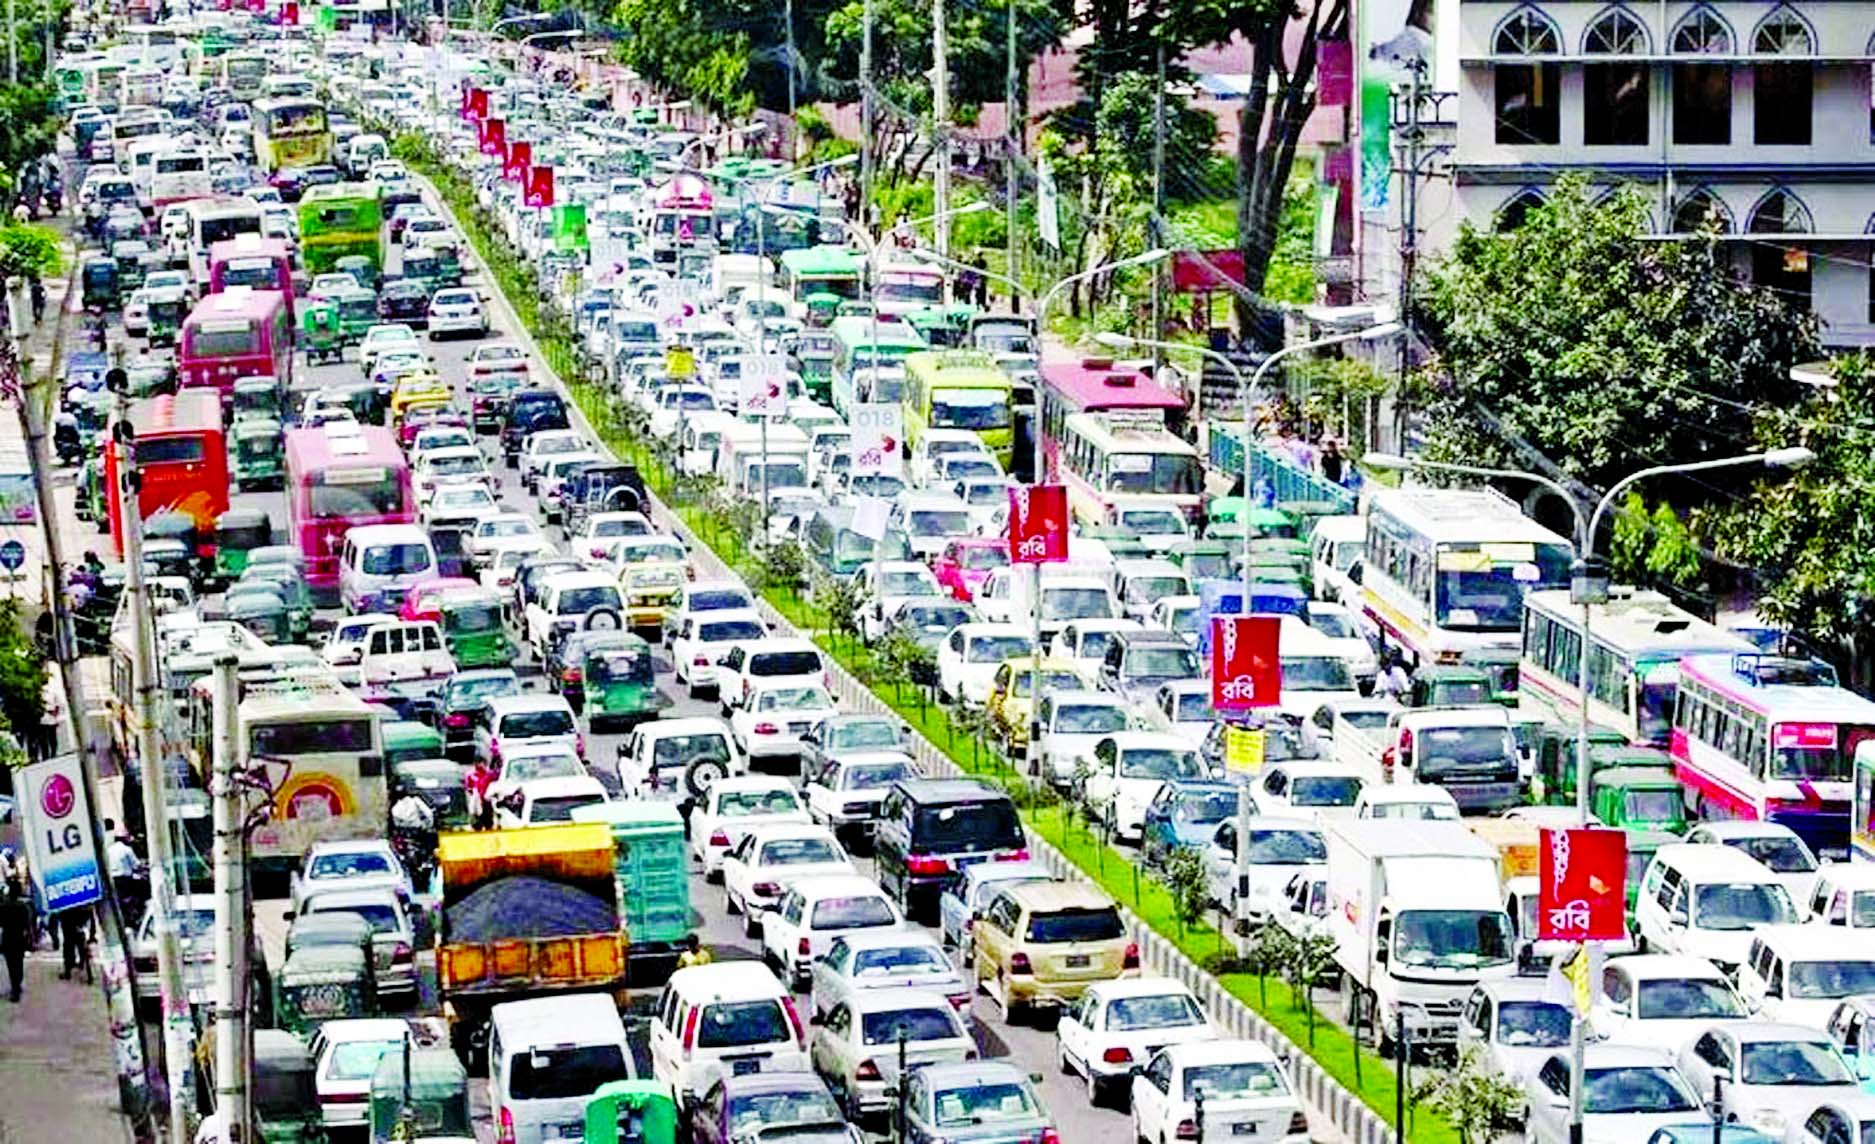 Traffic congestion in Dhaka city and its economic impact